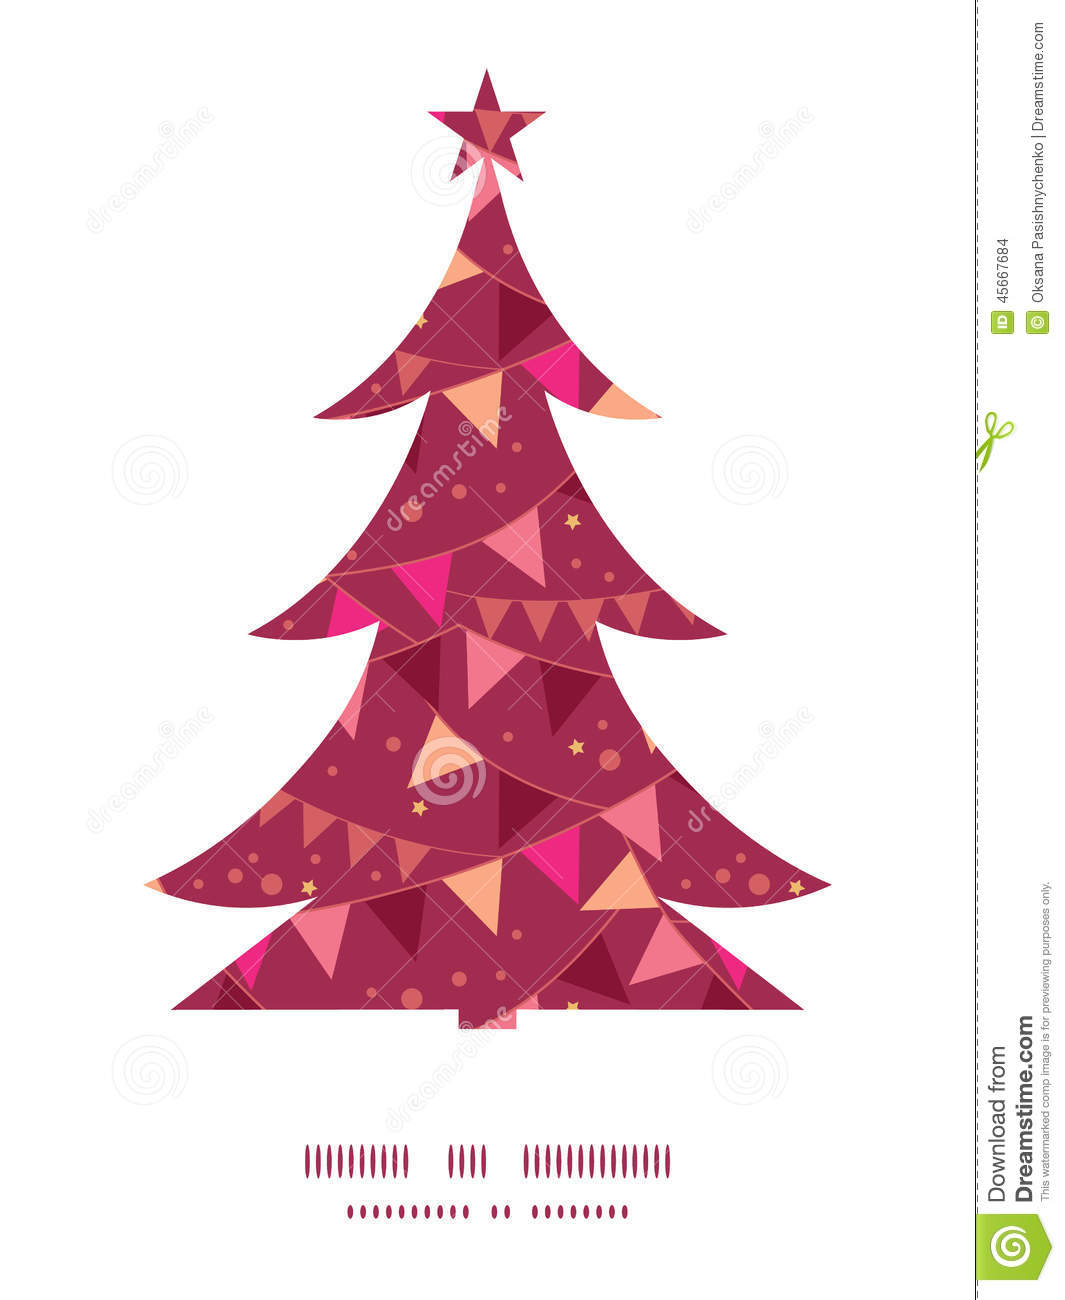 Vector decorations flags Christmas tree silhouette pattern frame card ...